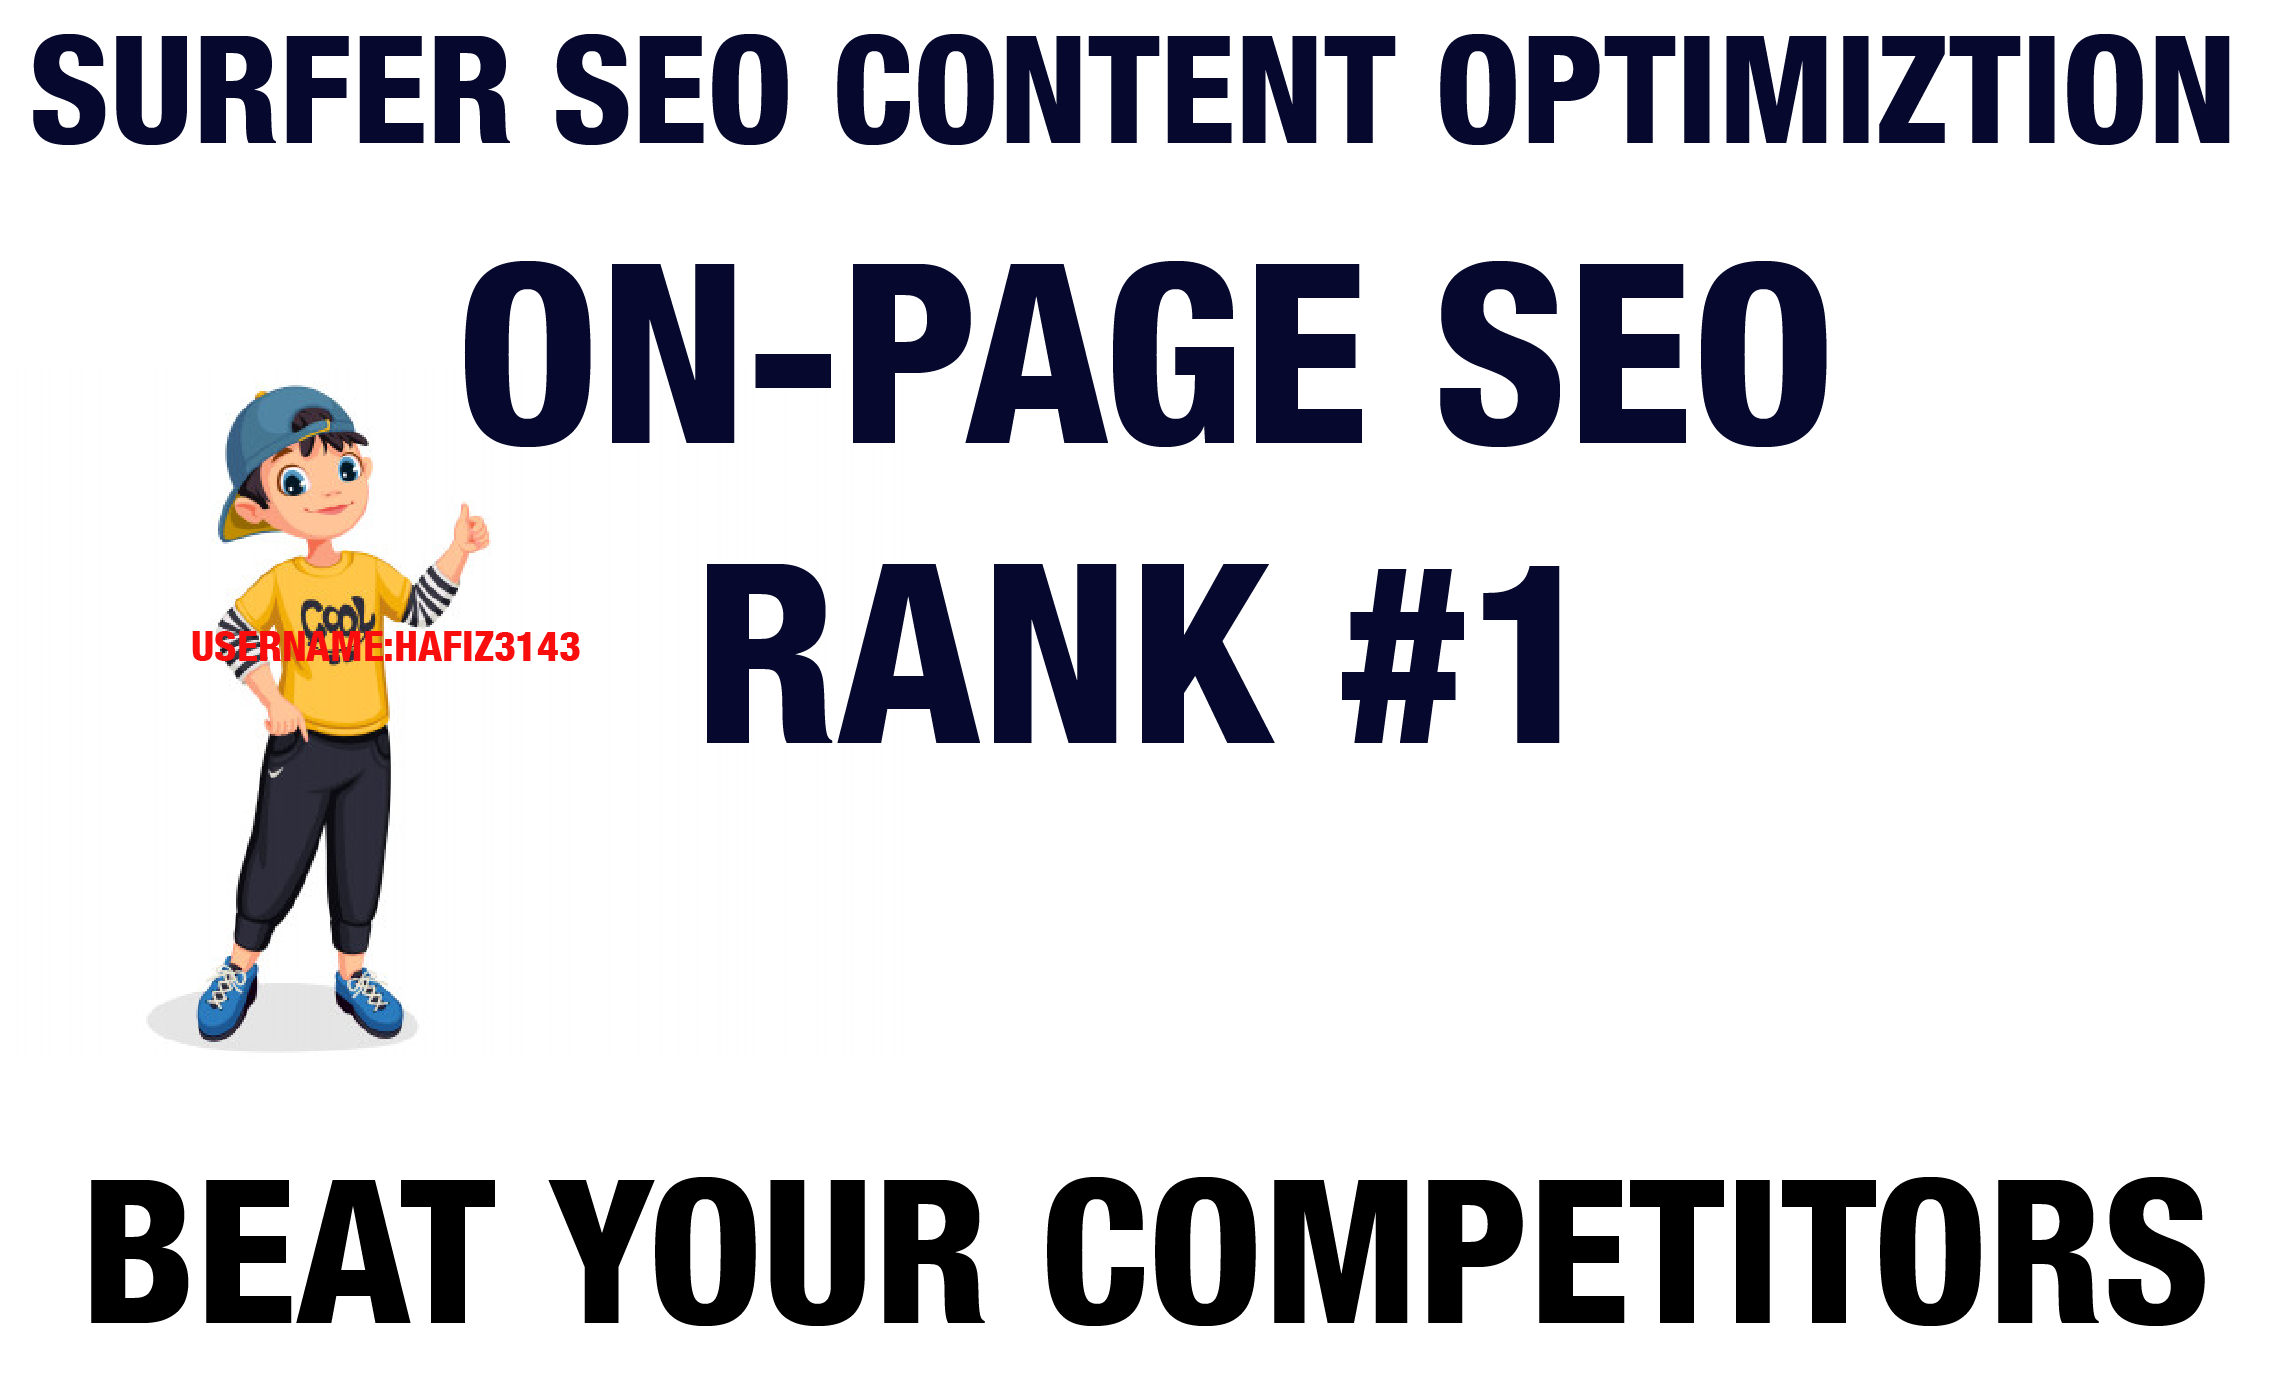 On-Page SEO With Surfer SEO To Optimized Your Content Rank 1 Google